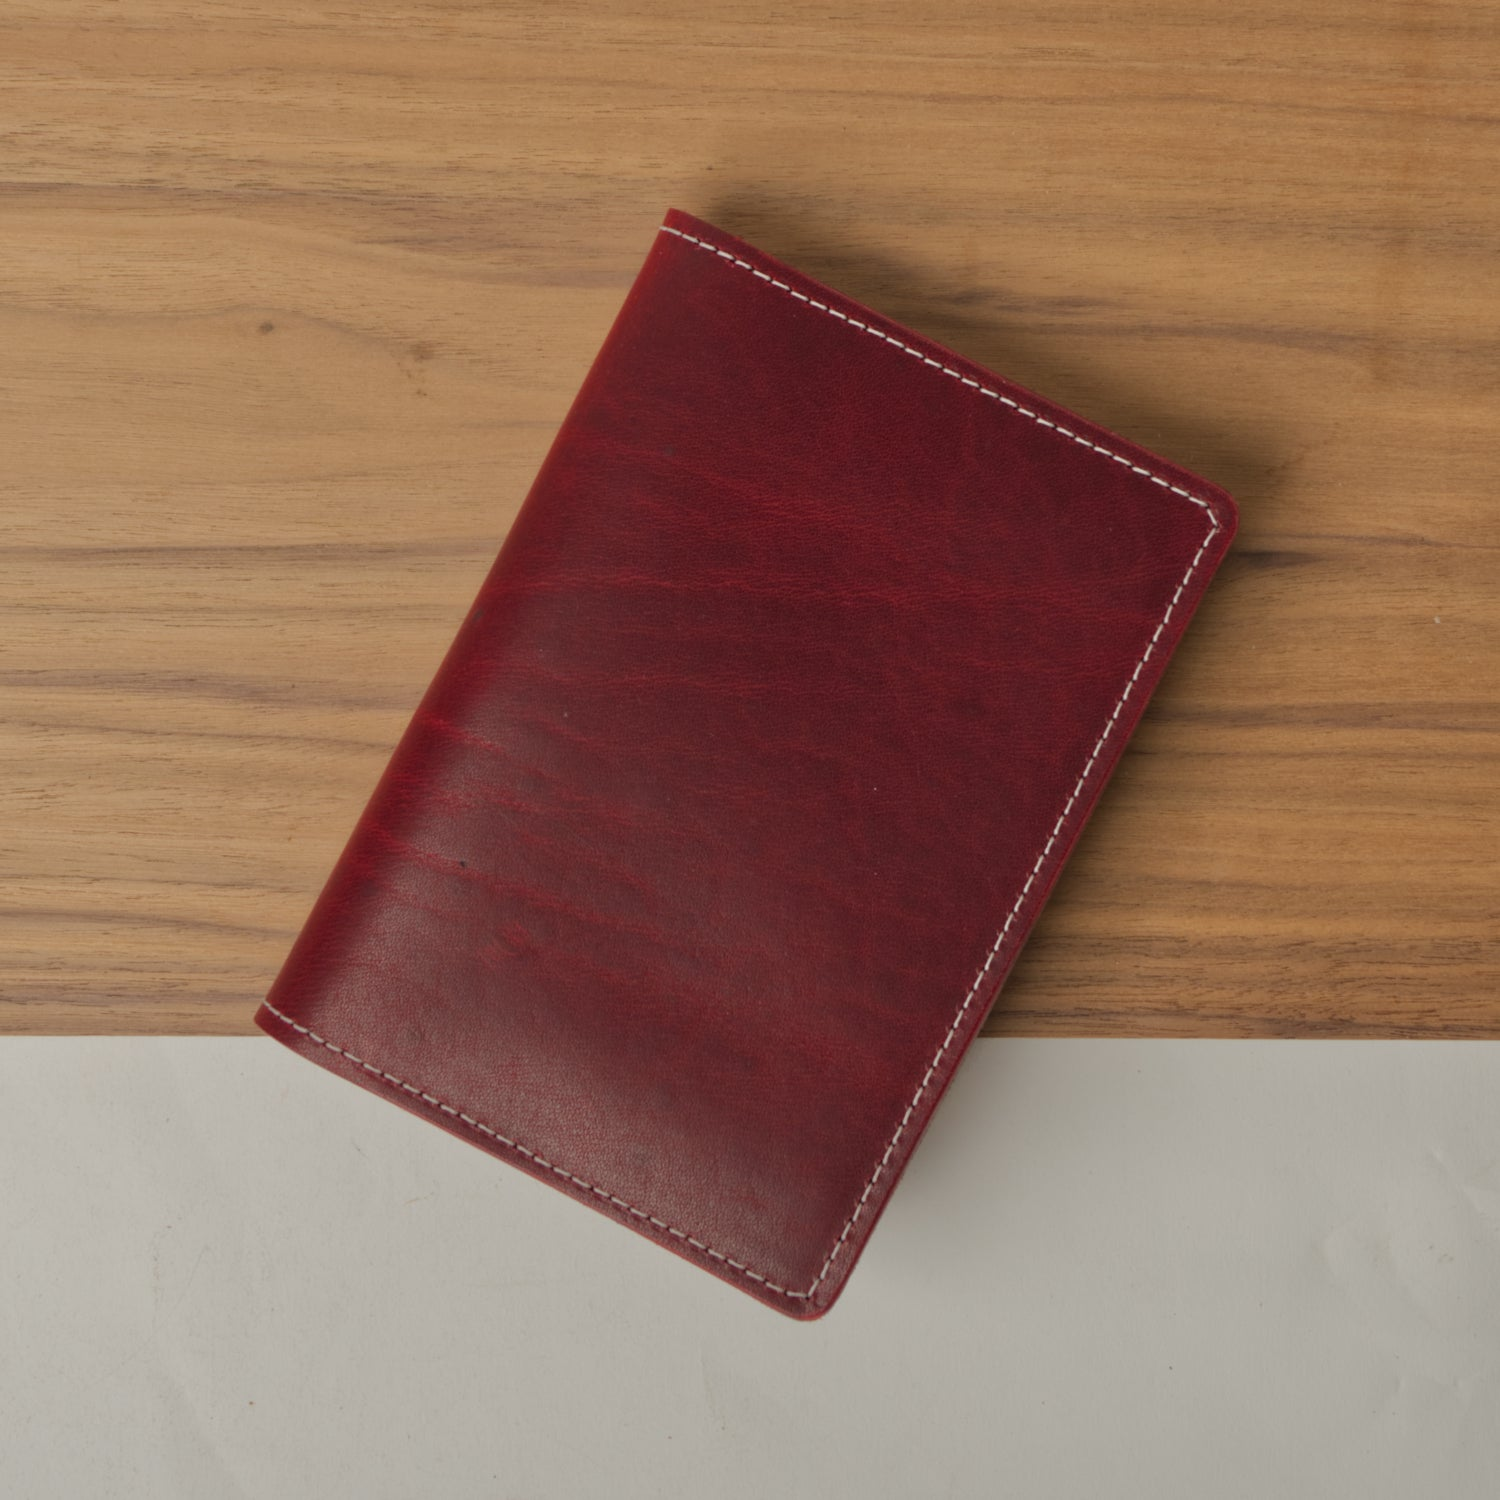 Scarlett Leather Cover for Field Notes with Pen Holder